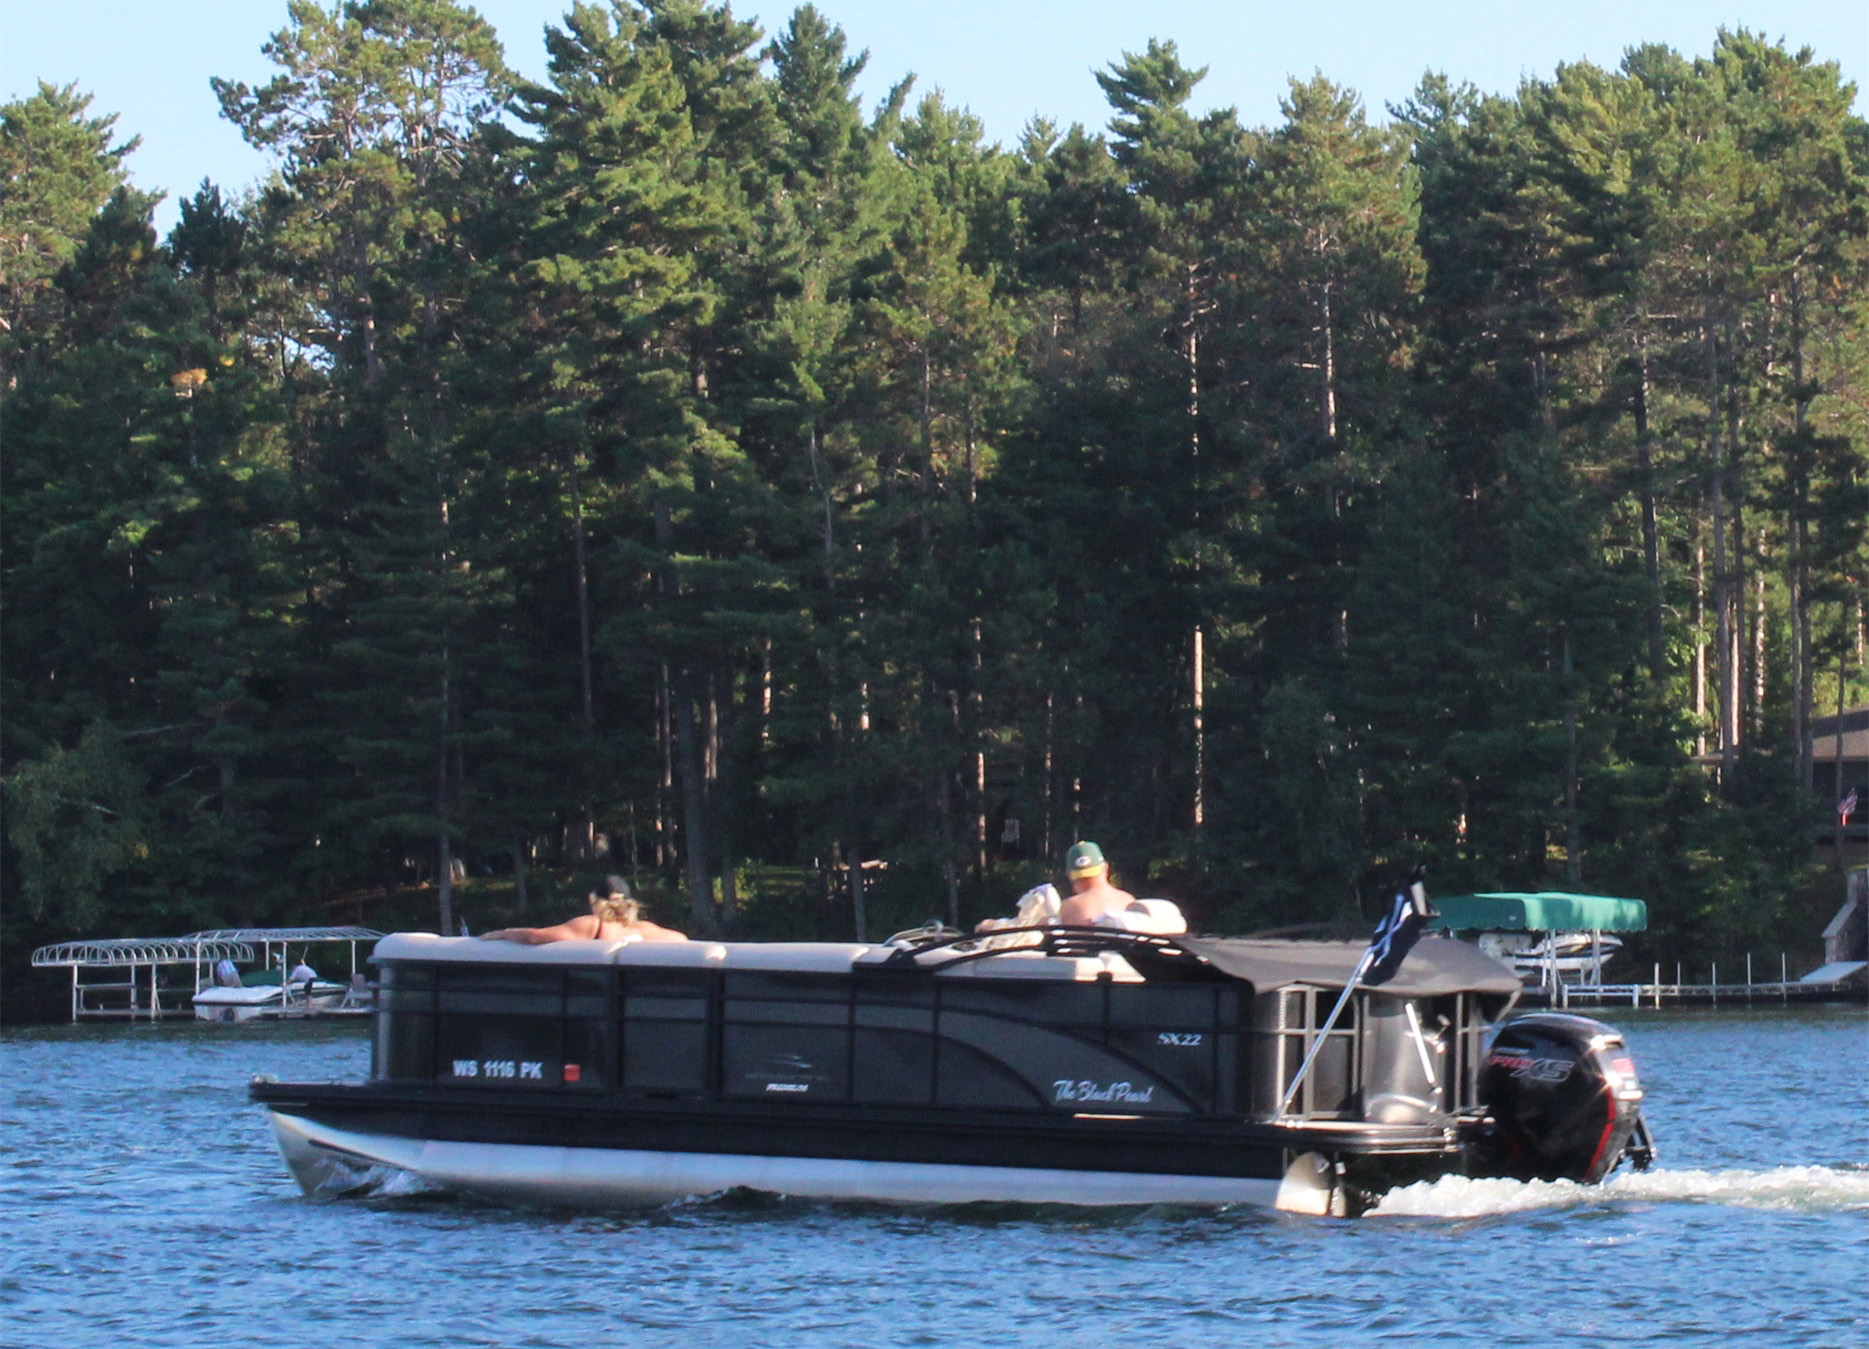 Boating on Lake Minocqua. Kim Johnson photo